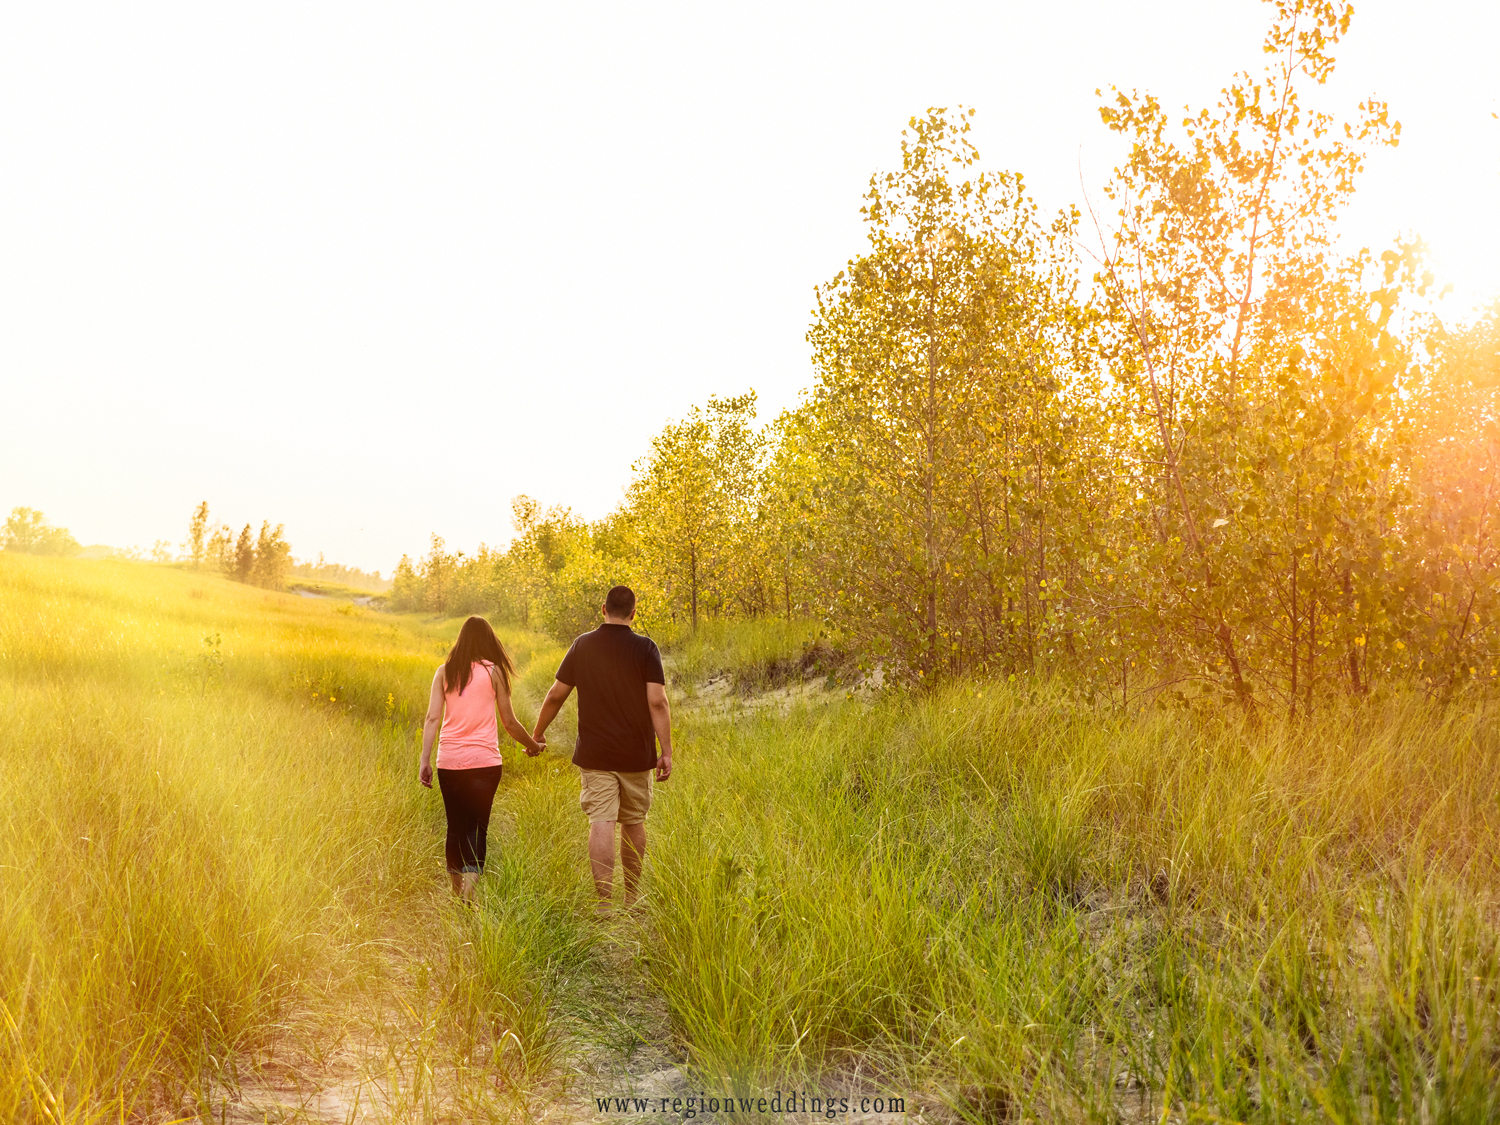 For their engagement photo, a couple strolls along a pathway at the Indiana Dunes.